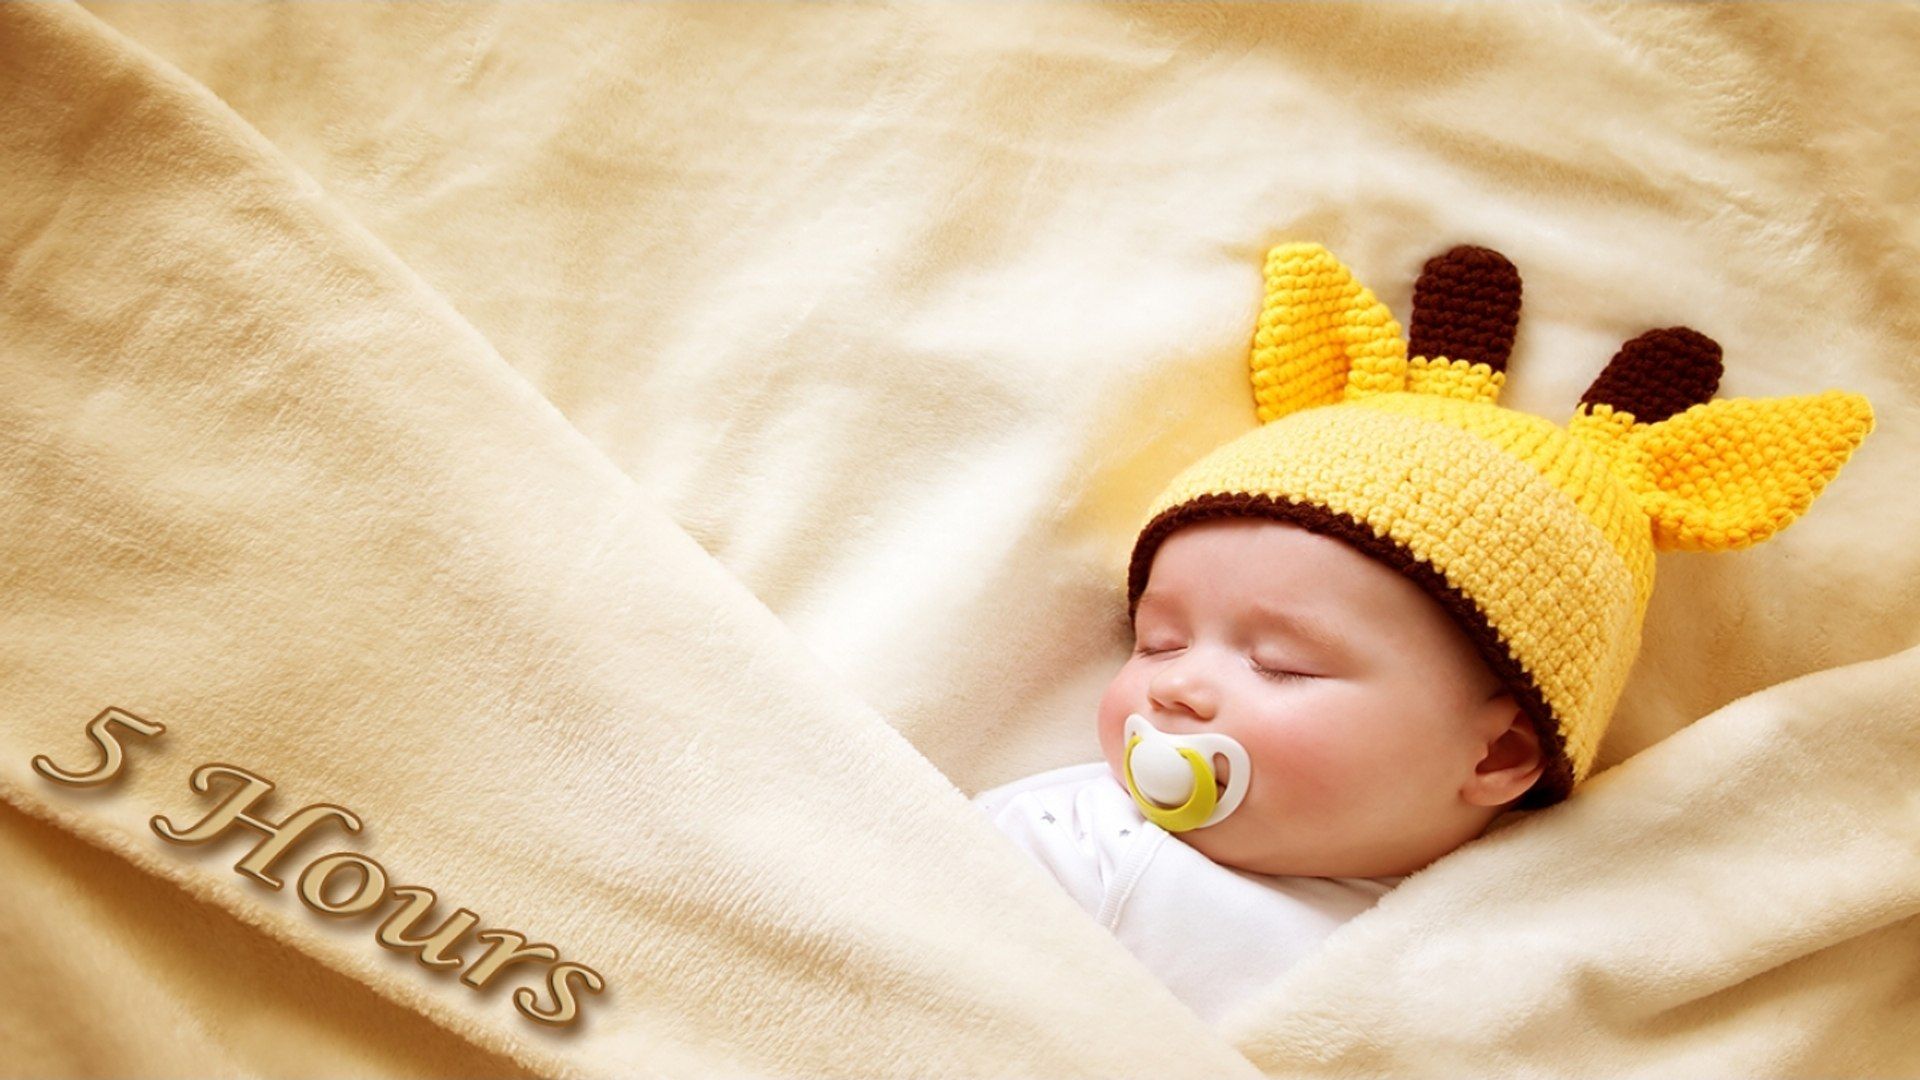 Jl - 5 Hours of relaxing music for baby sleeping I Kids Music